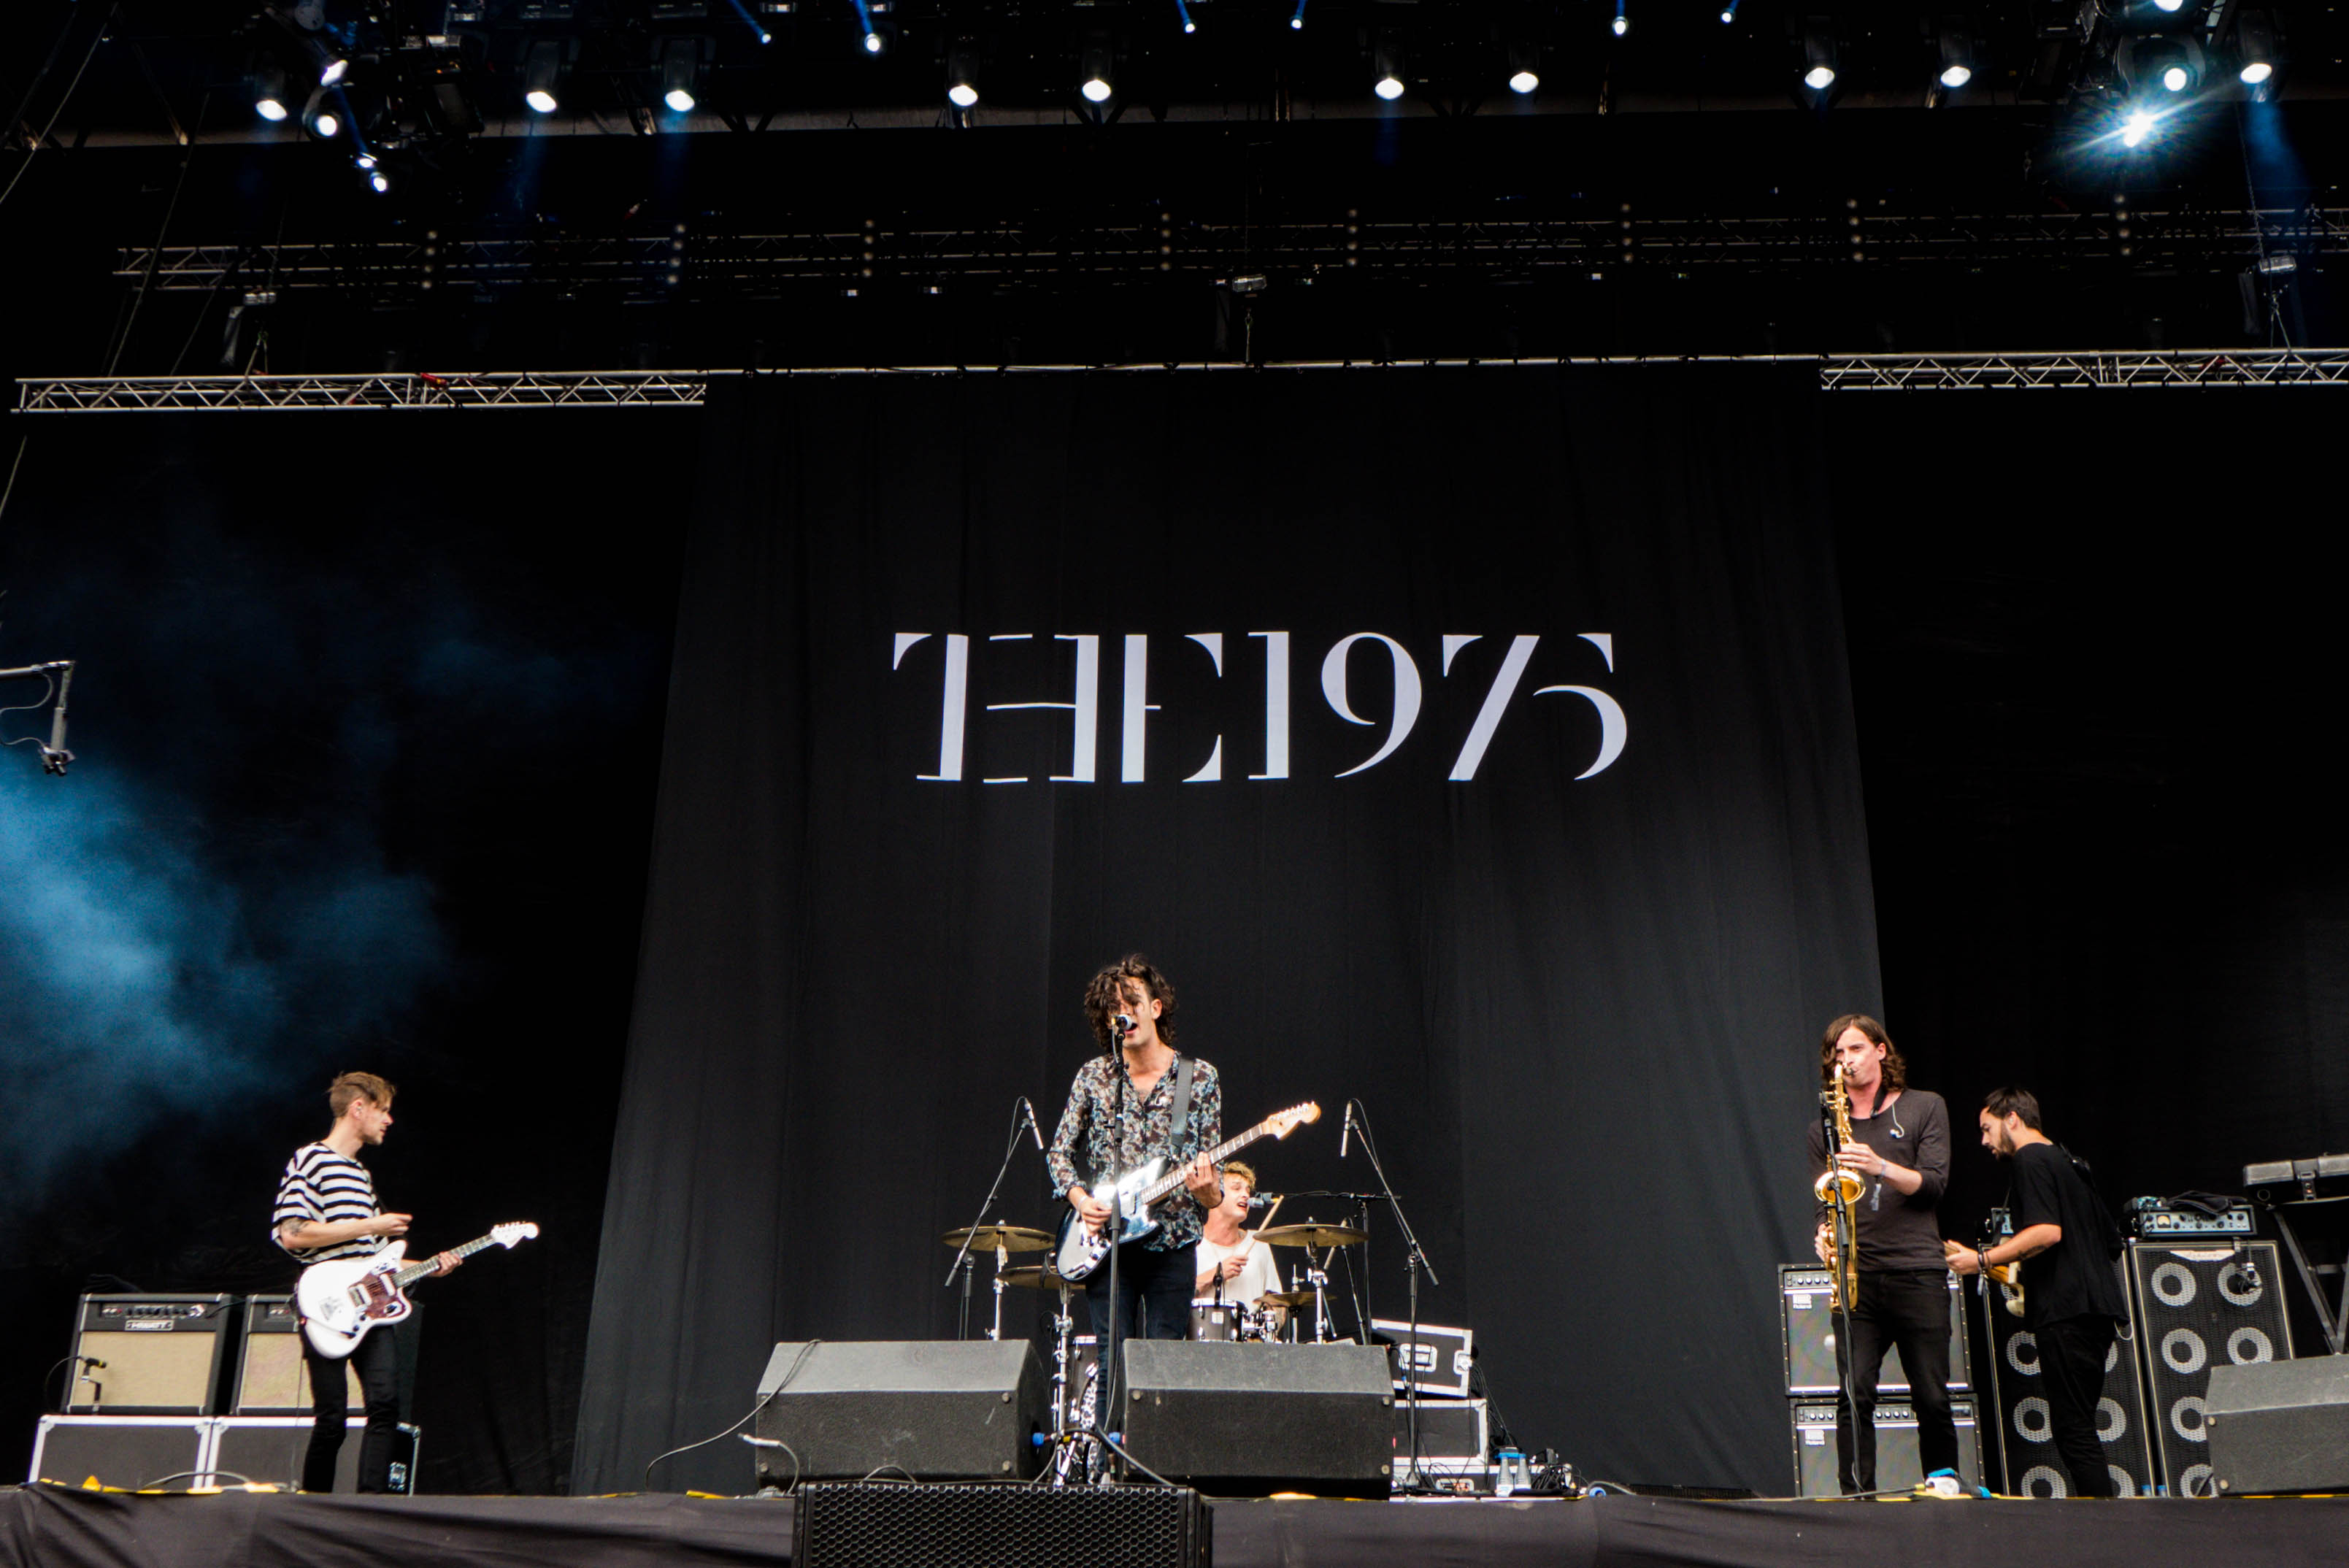 Early Fall Hd Wallpaper The 1975 Announce Fall North American Tour Dates